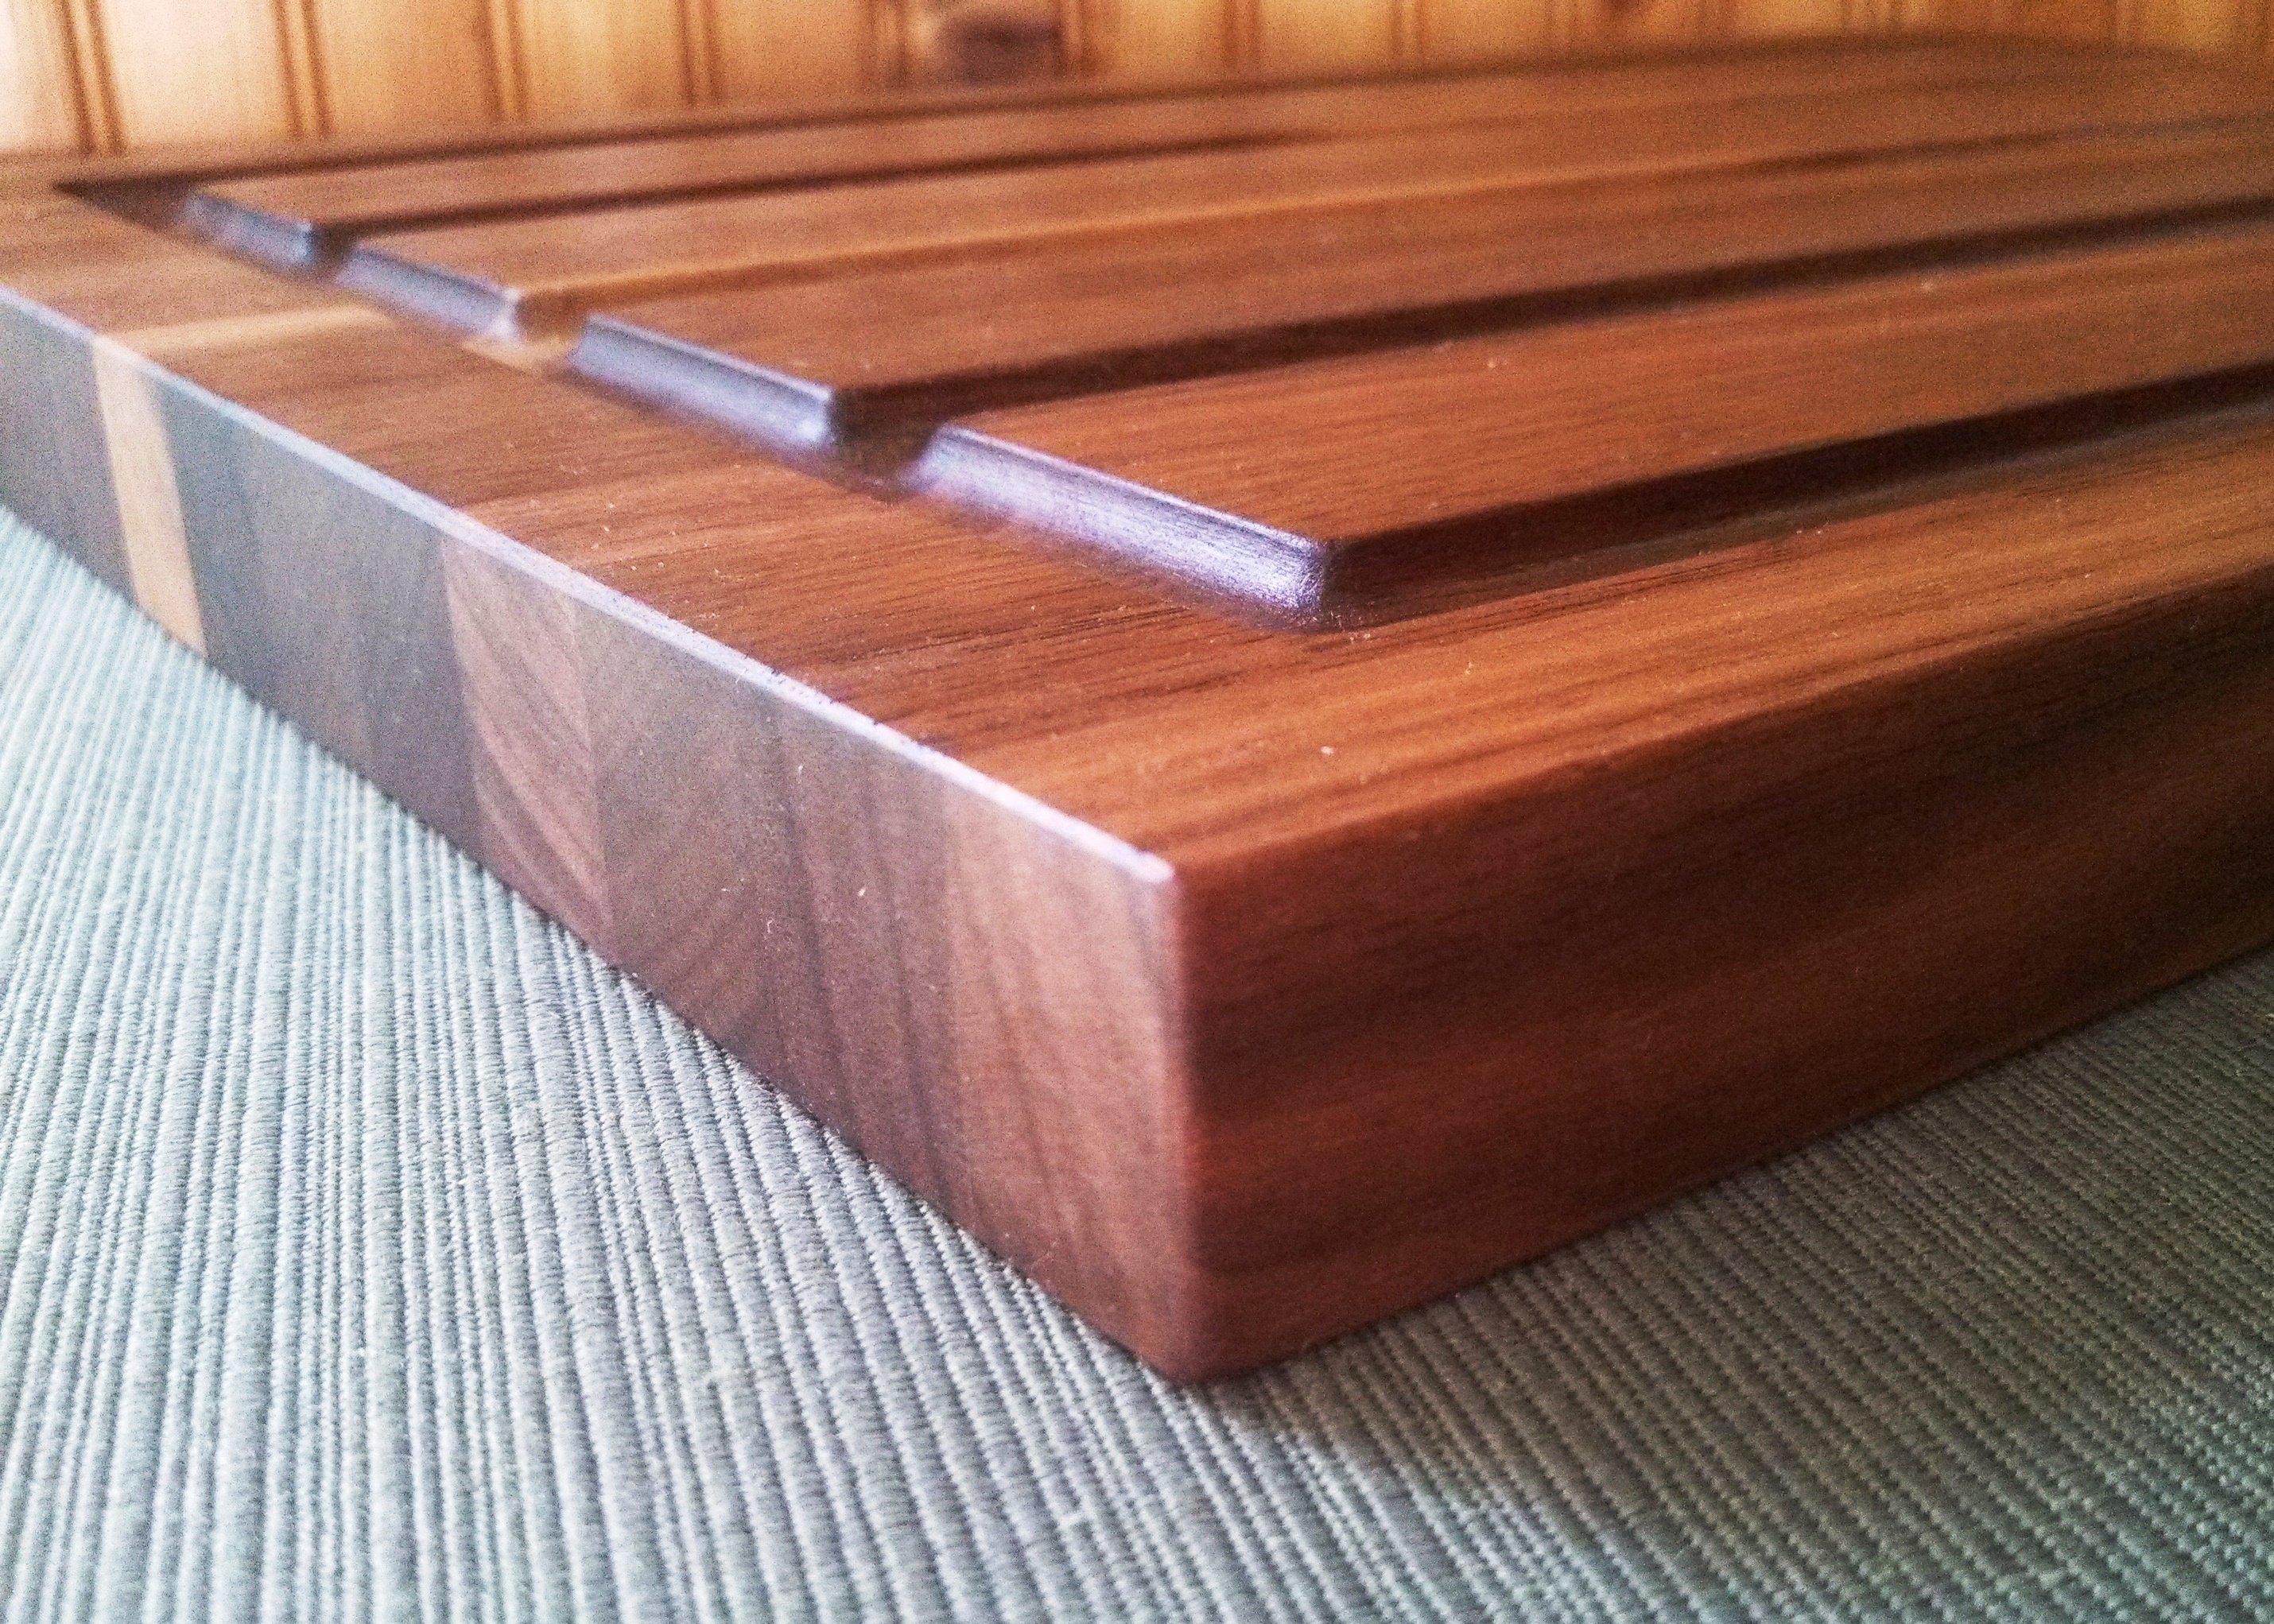 specialty  cutting boards  creative woodworking, Kitchen design